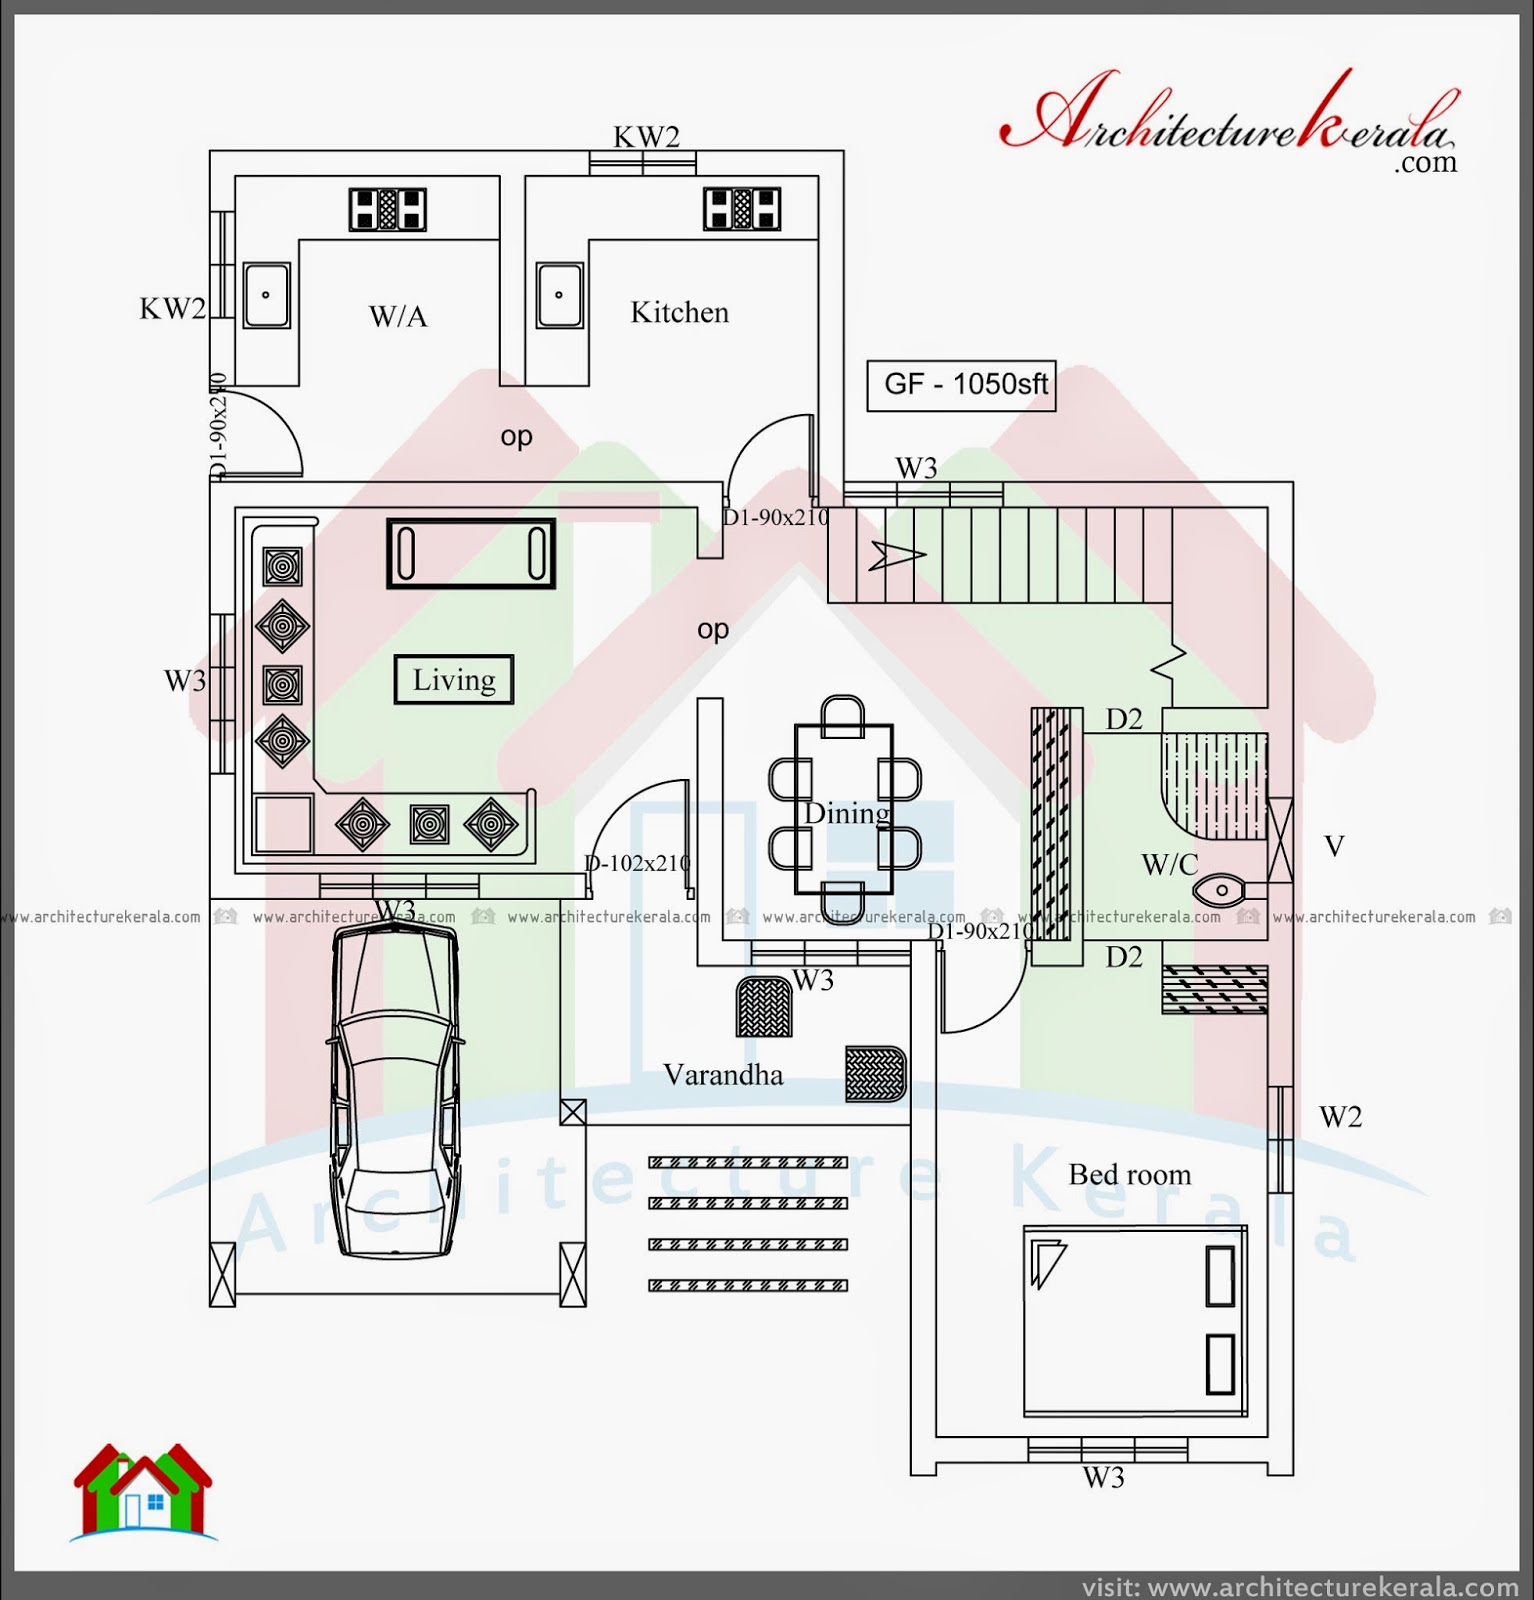 Three bedroom two storey house plan architecture kerala for Kerala house plans with photos free